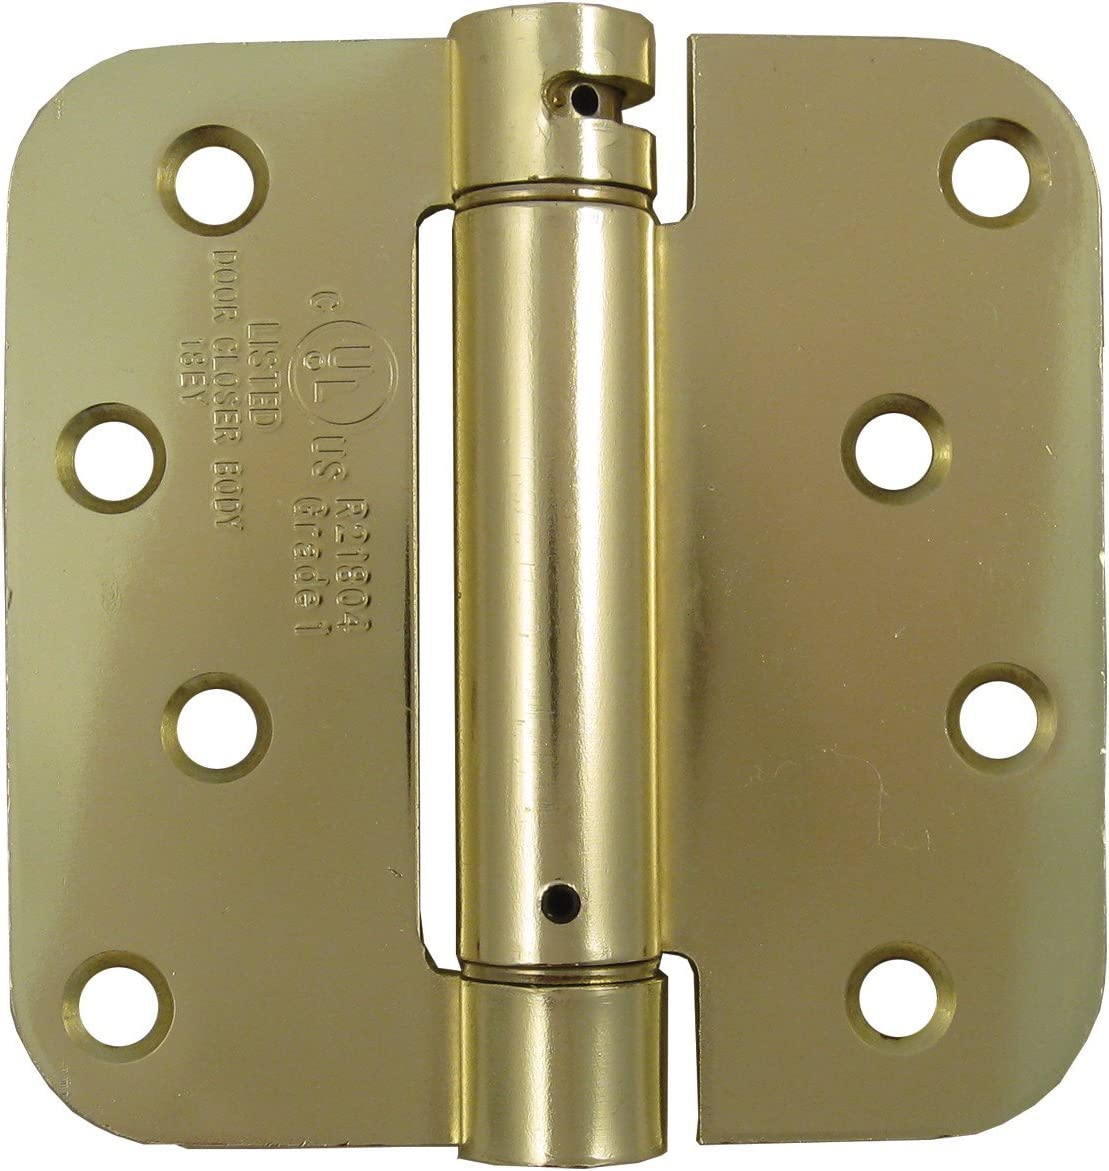 Hinge Outlet Adjustable Spring Hinges 2 Pack Self Closing Hinges 3.5 Inch with 5//8 Inch Radius in Satin Brass Door Closing Hinges